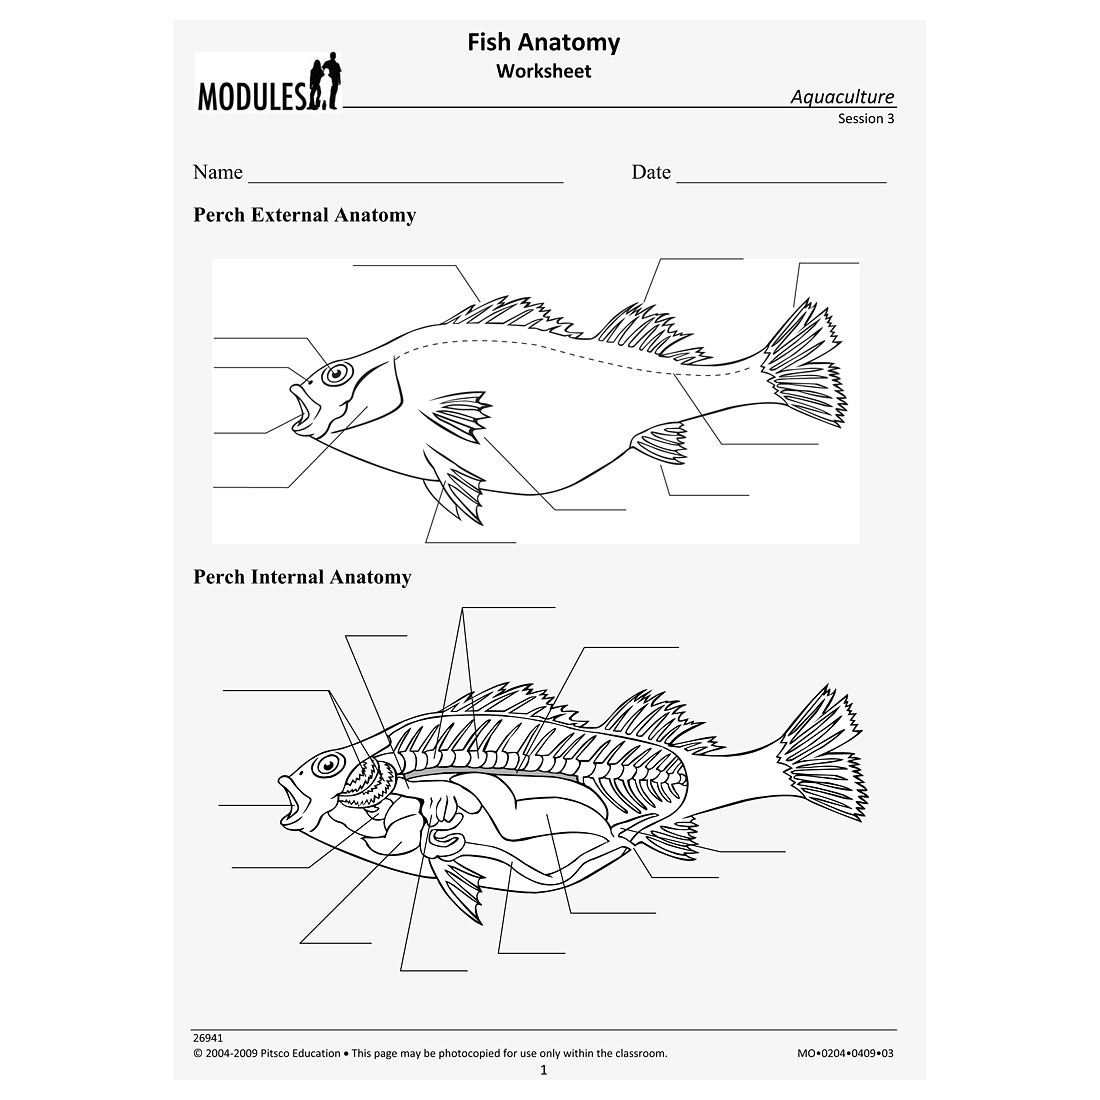 Fish Anatomy Worksheet W